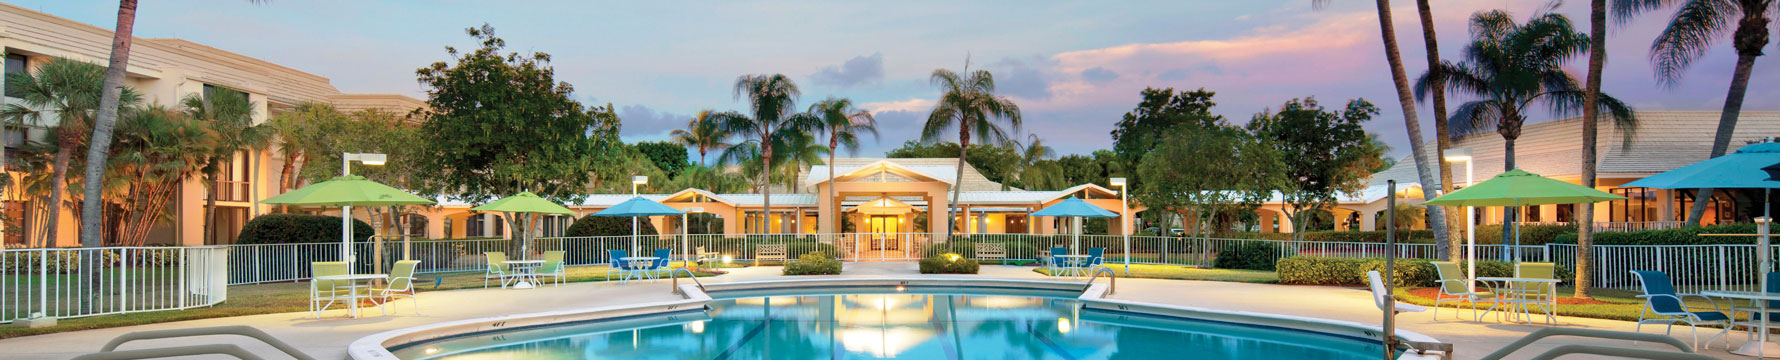 The sun setting over the outdoor pool at Abbey Delray senior living community